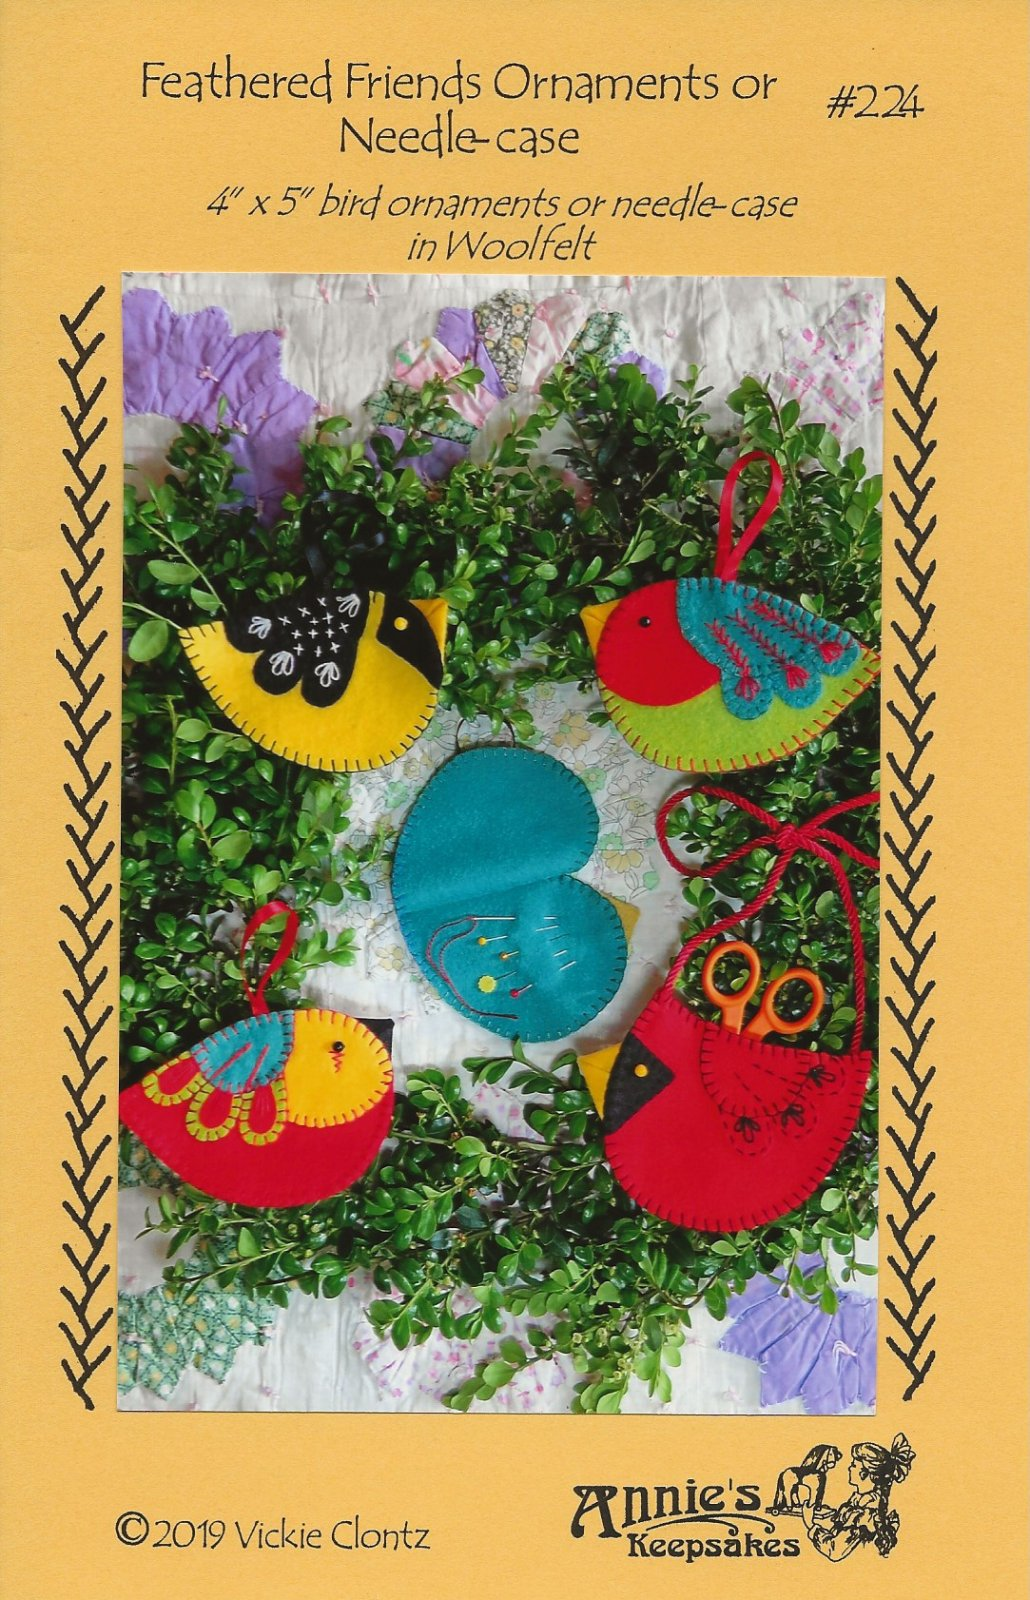 Feathered Friends Ornaments or Needle-case